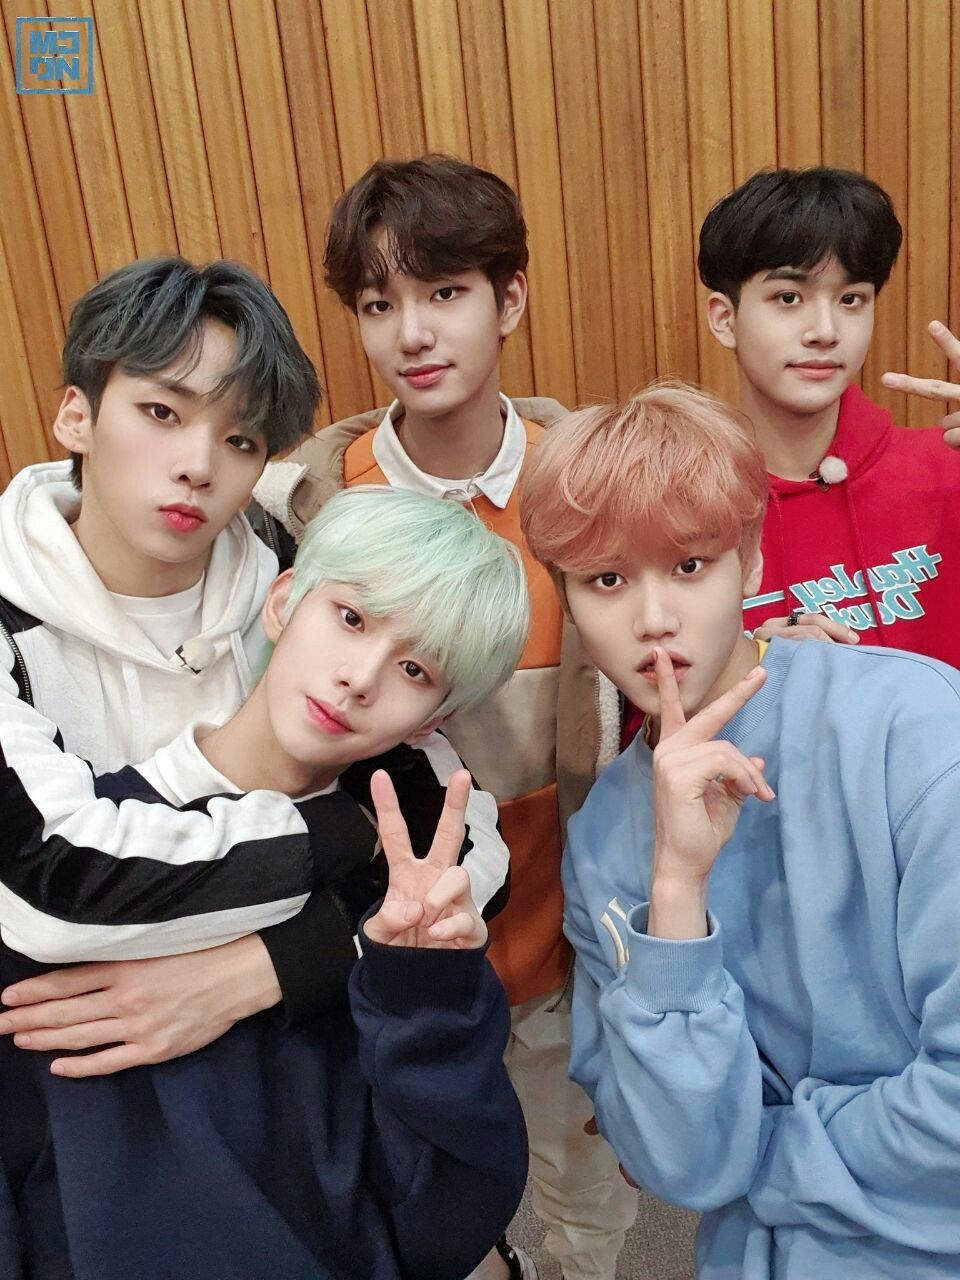 Pin By Alba Uwu On Mcnd In 2020 Cute Boy Things Boy Groups Pop Group